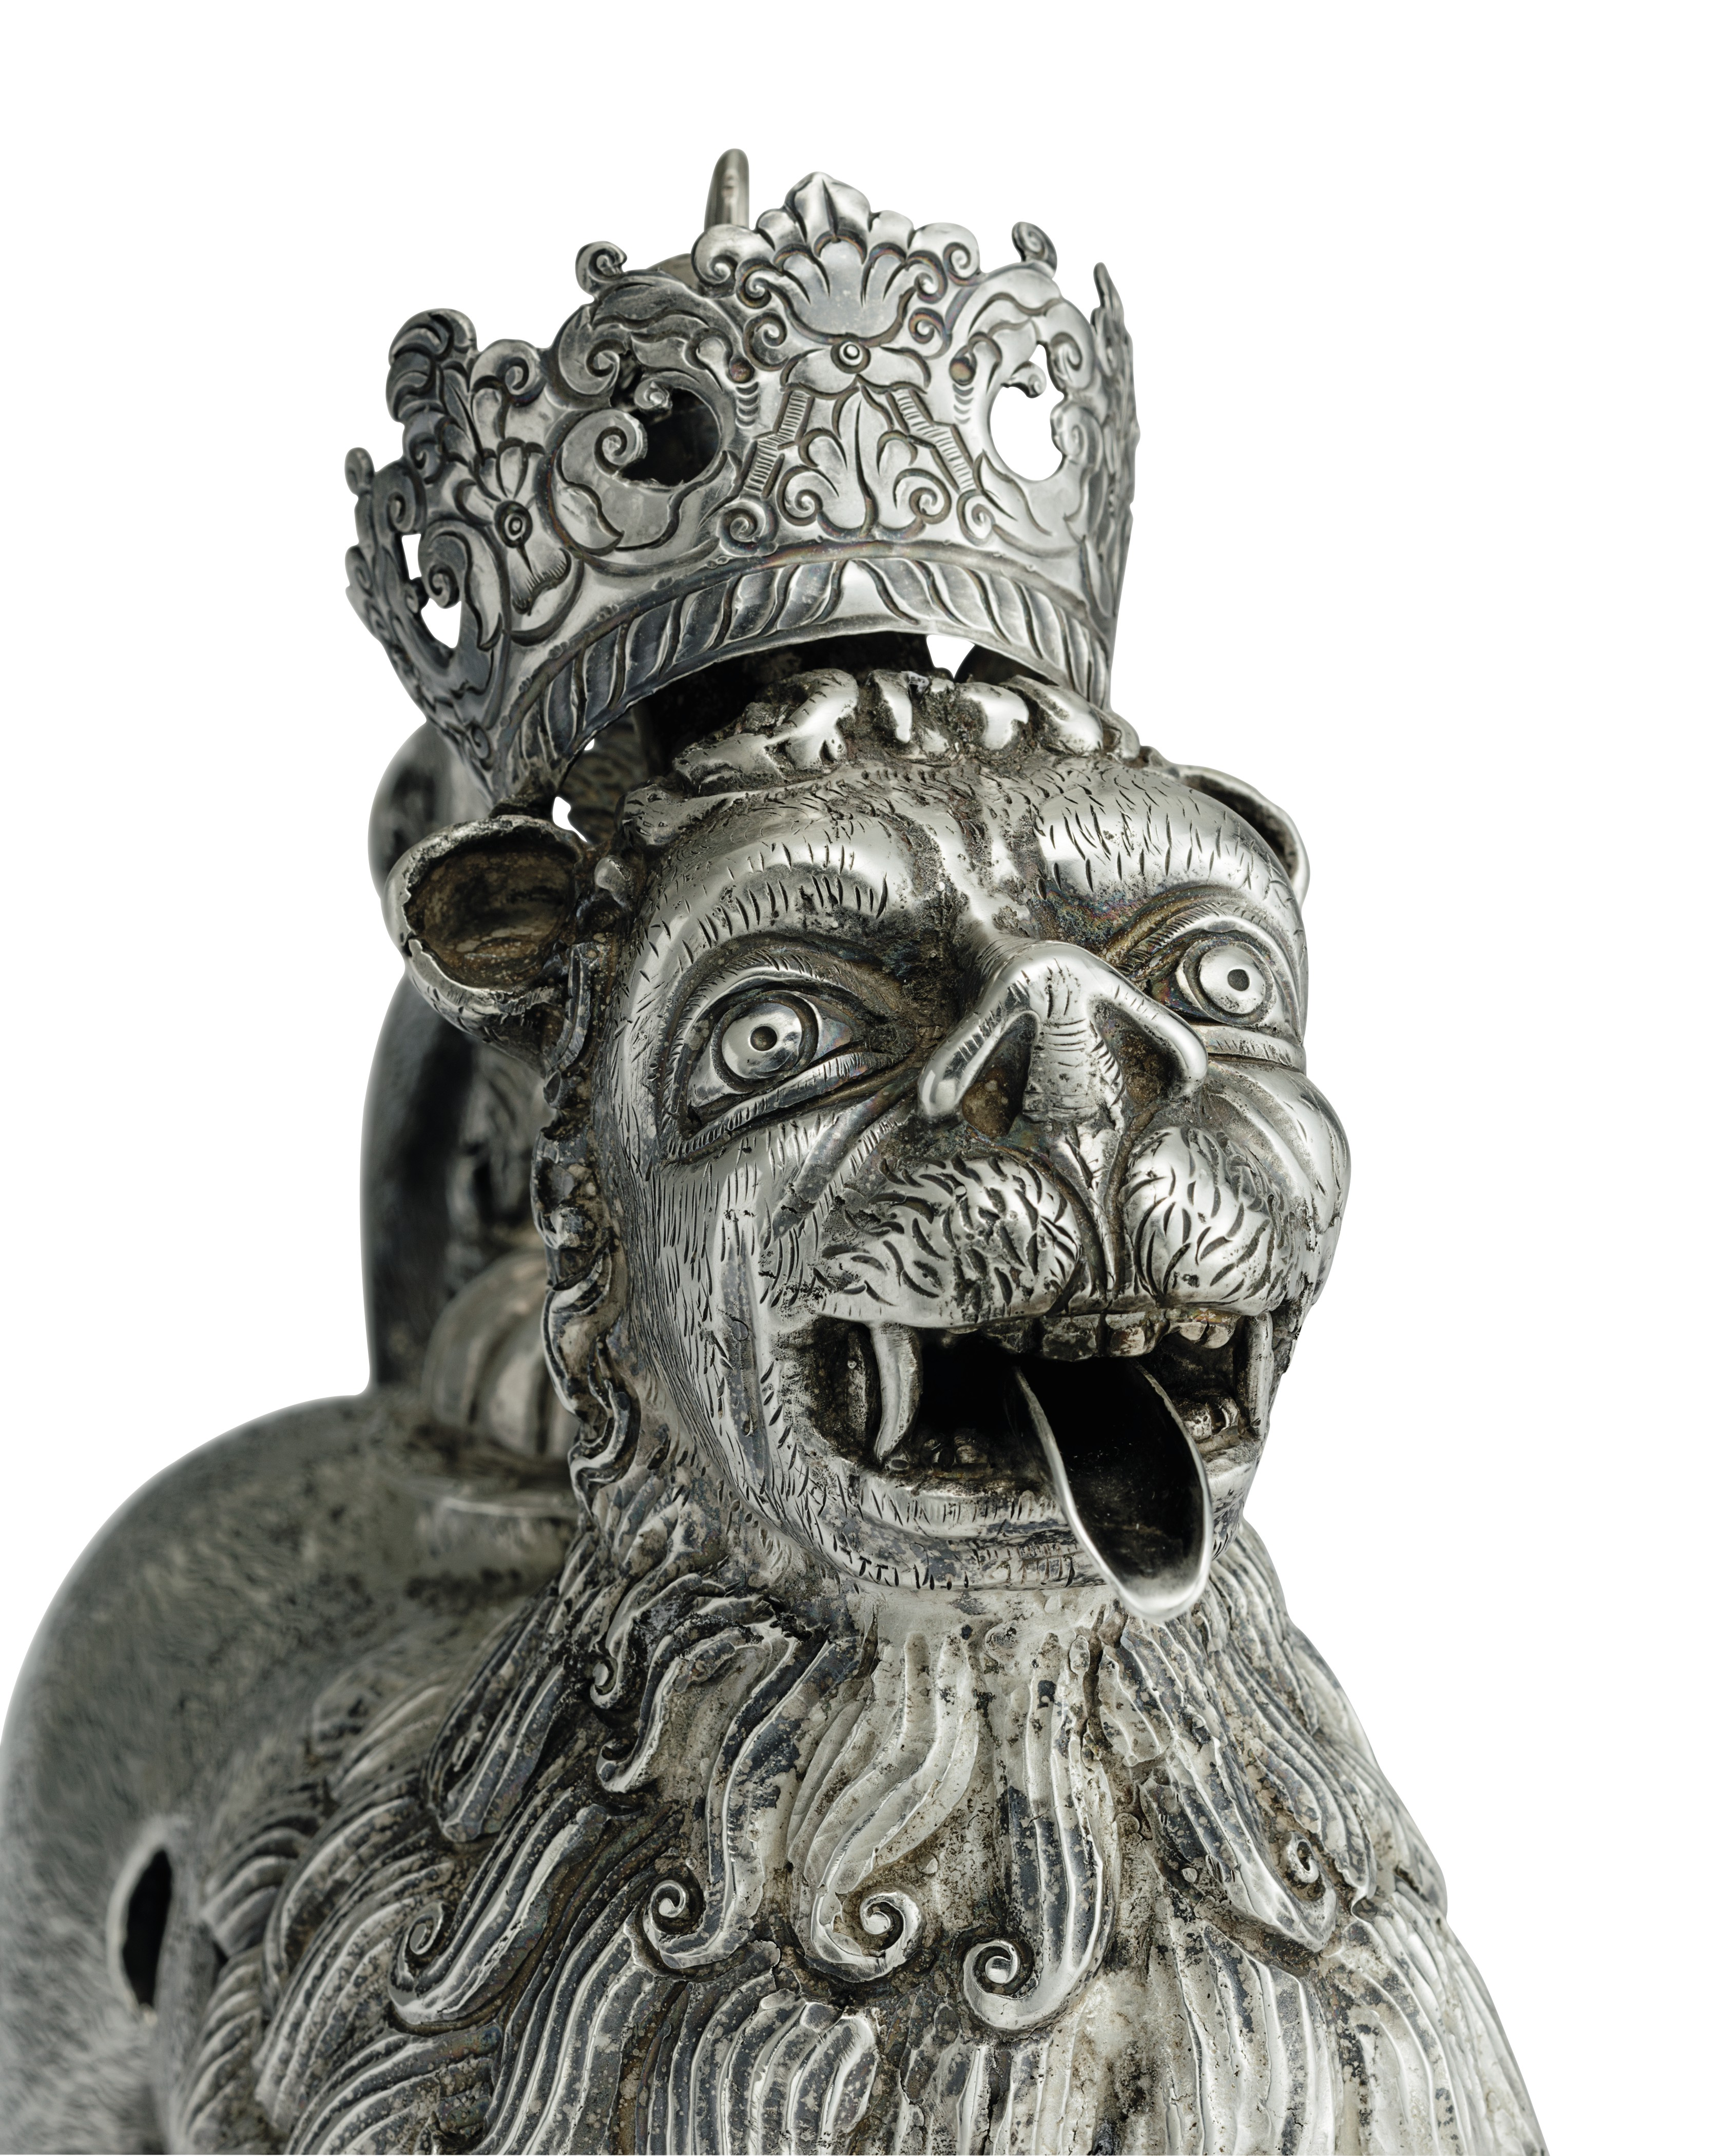 A PAIR OF SPANISH COLONIAL SILVER AQUAMANILES